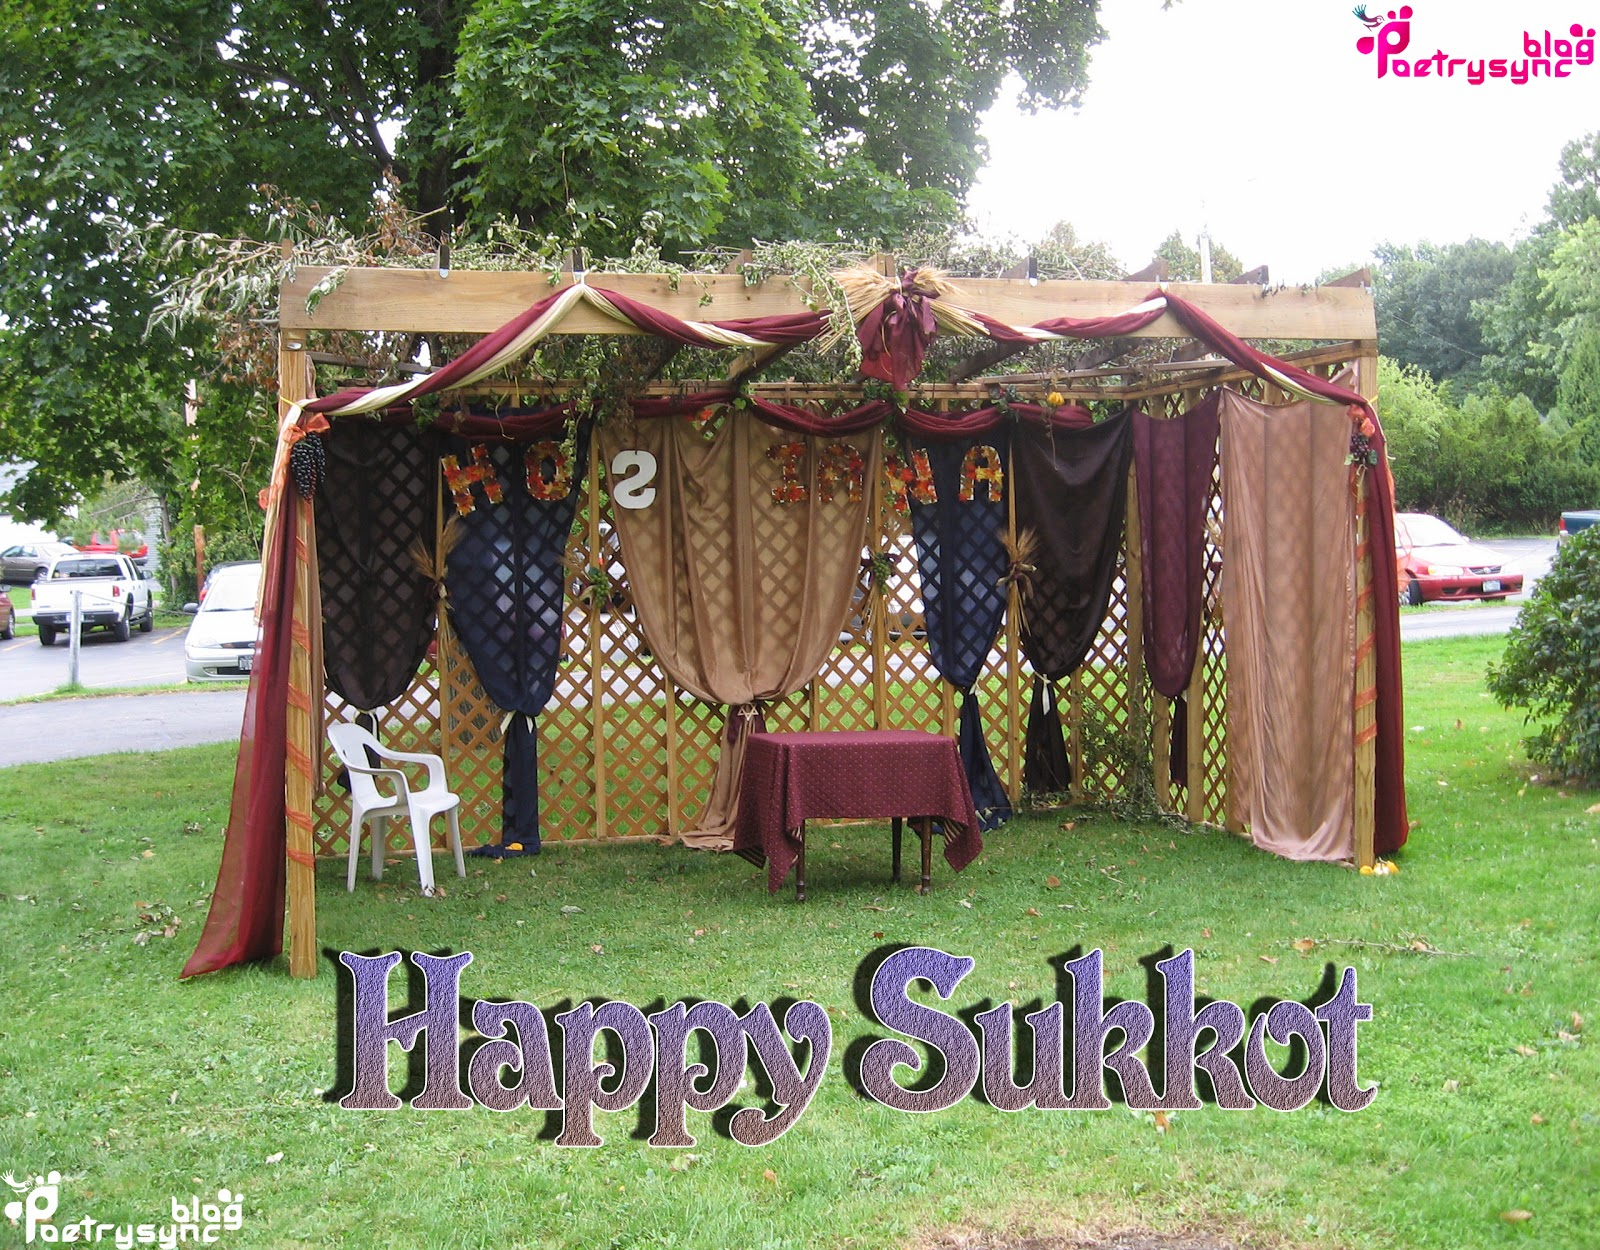 Christian Fathers Day Quotes Wallpapers Wishing Sukkot Festival 2014 Greetings With Detail